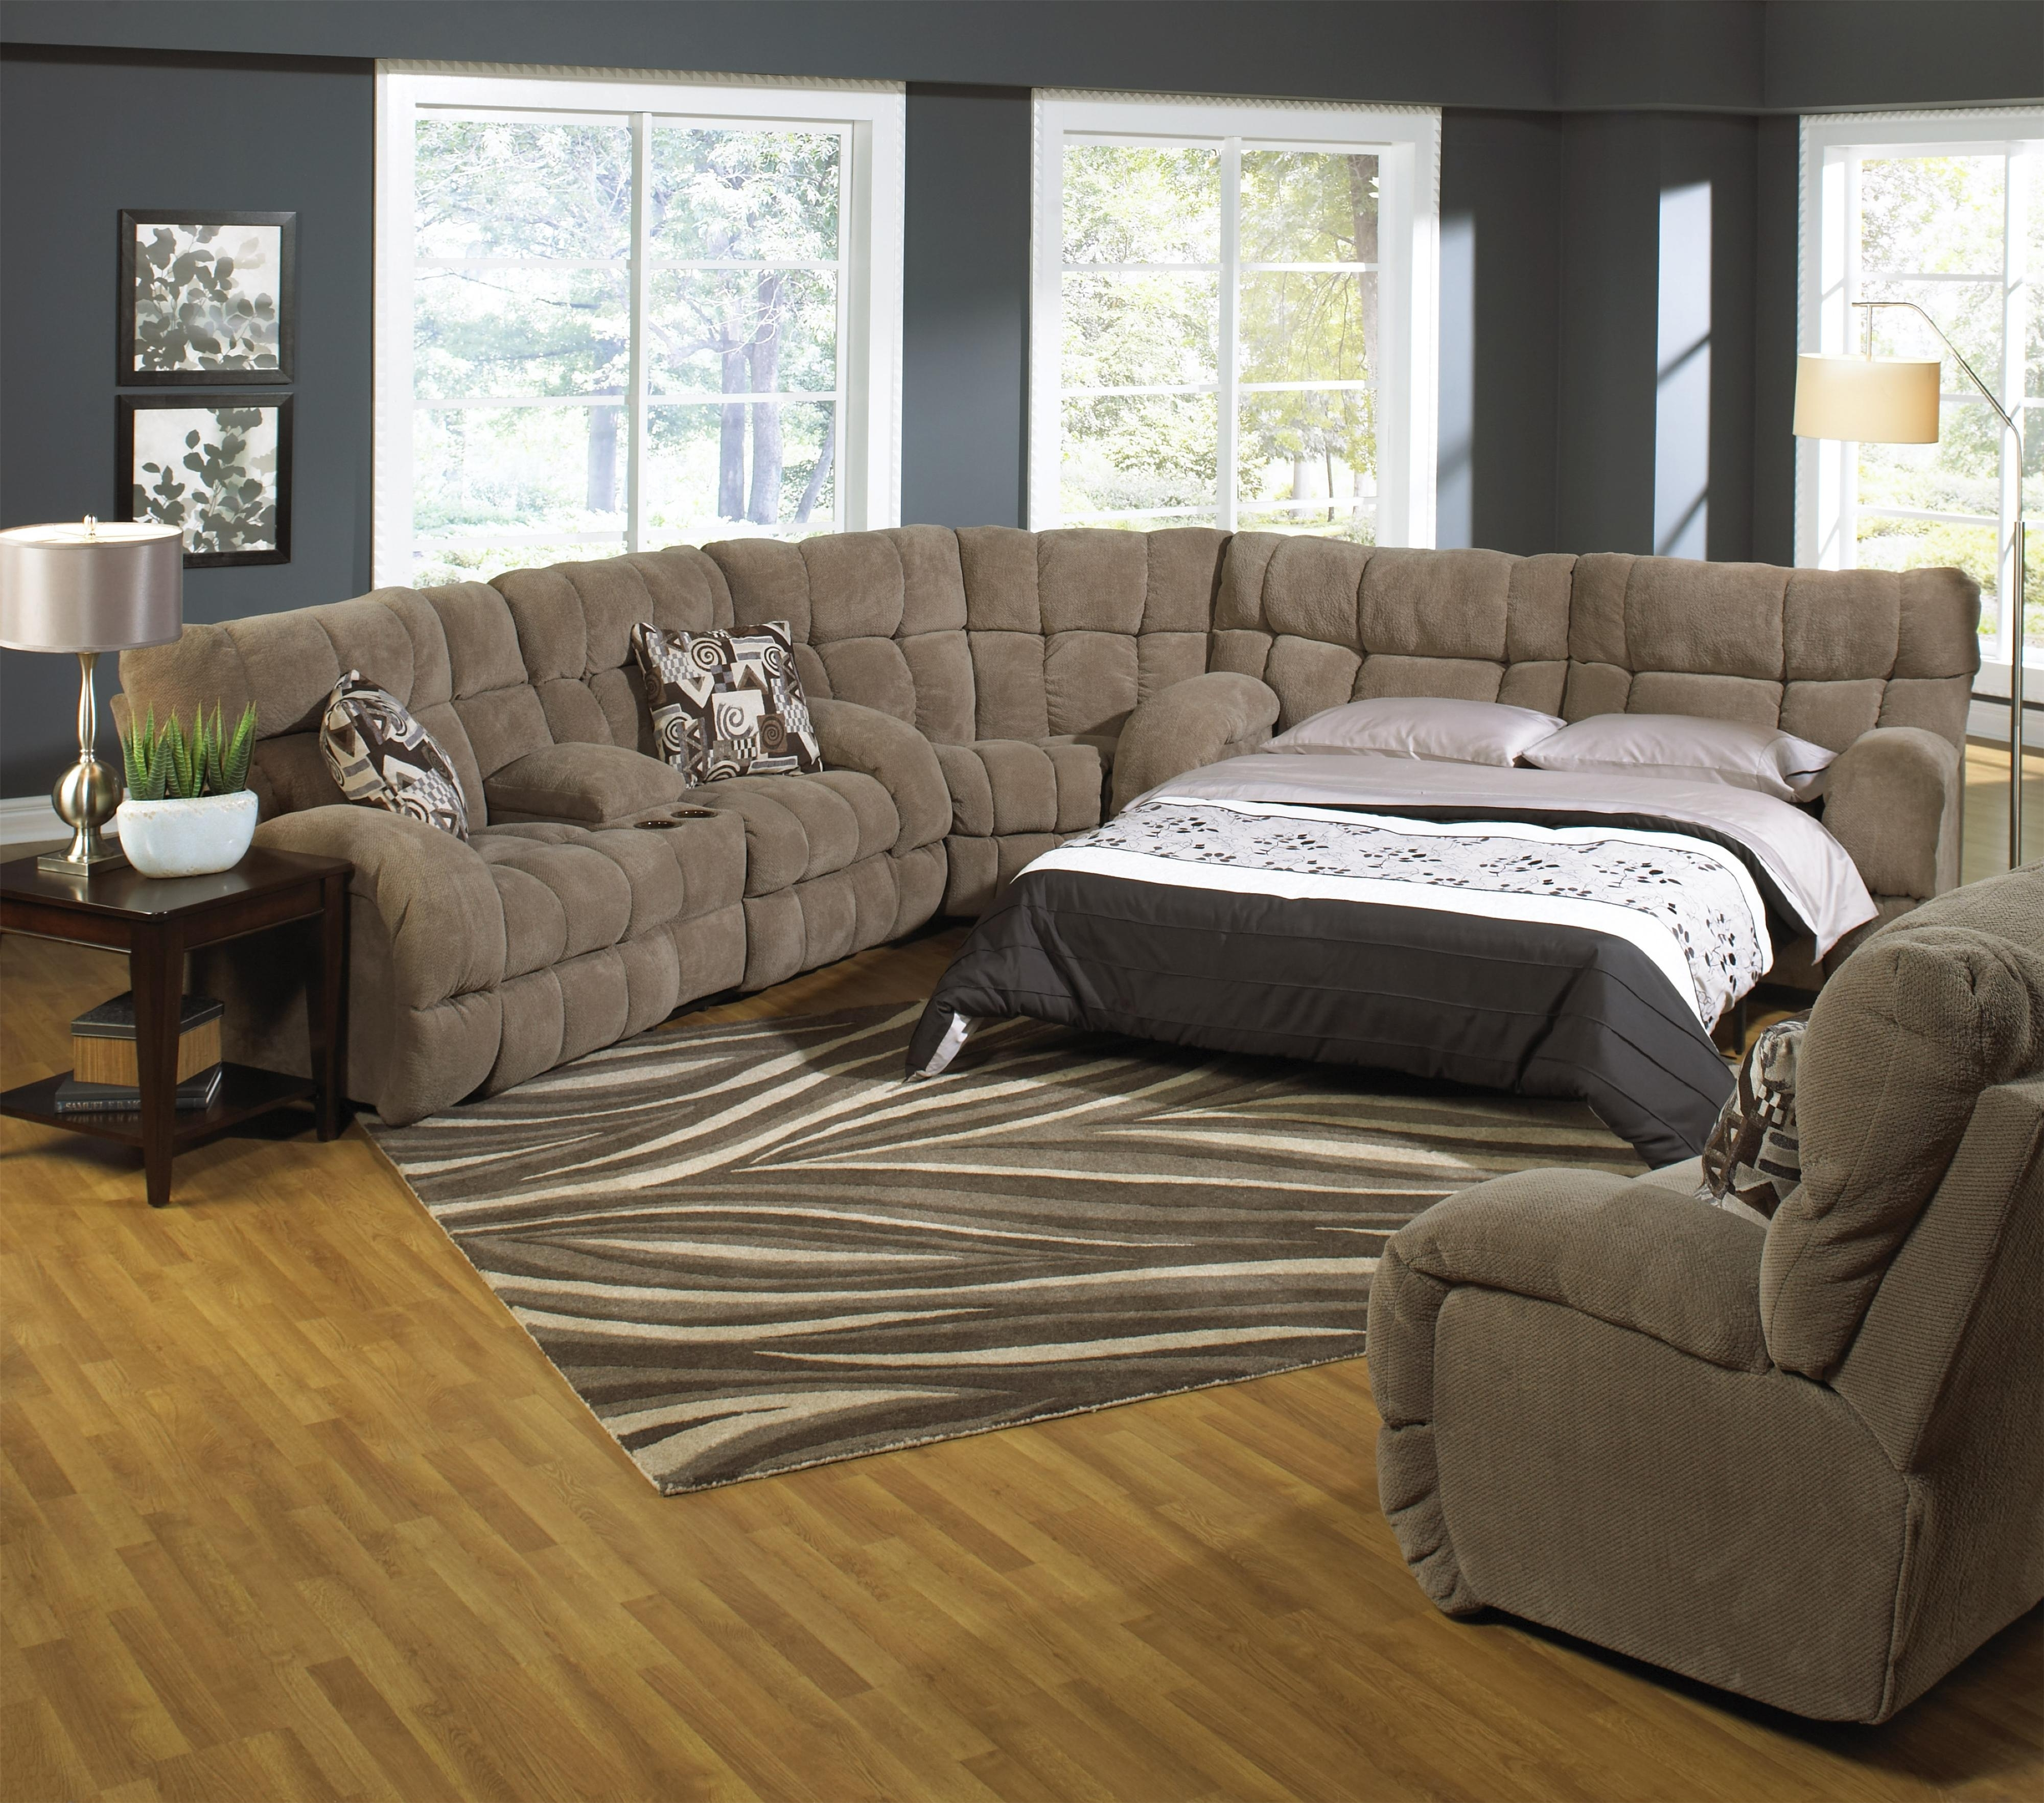 Reclining Sectional Sofa With Sofa Sleepercatnapper | Wolf And Throughout Sectional Sofas With Recliners (Image 8 of 10)